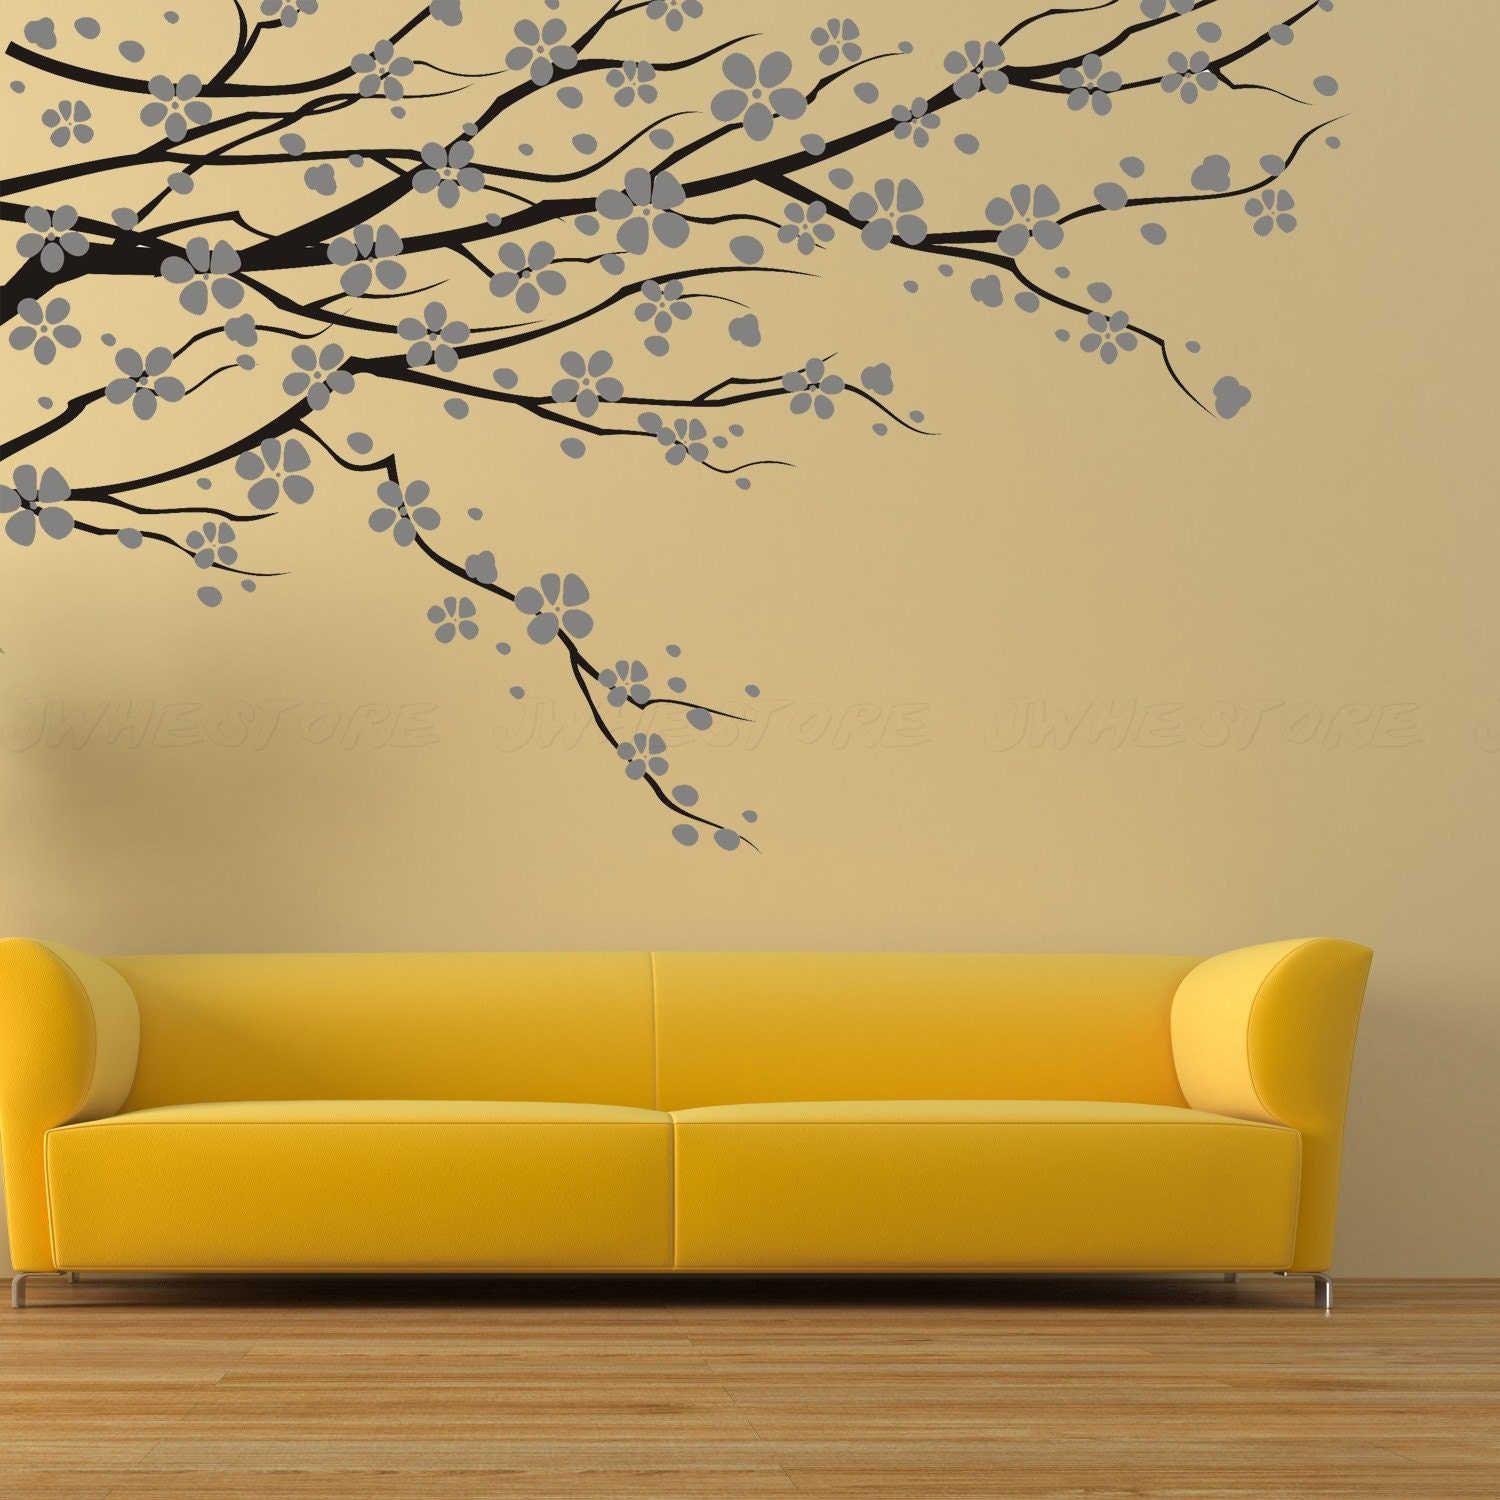 Branch Wall Decal - Elitflat